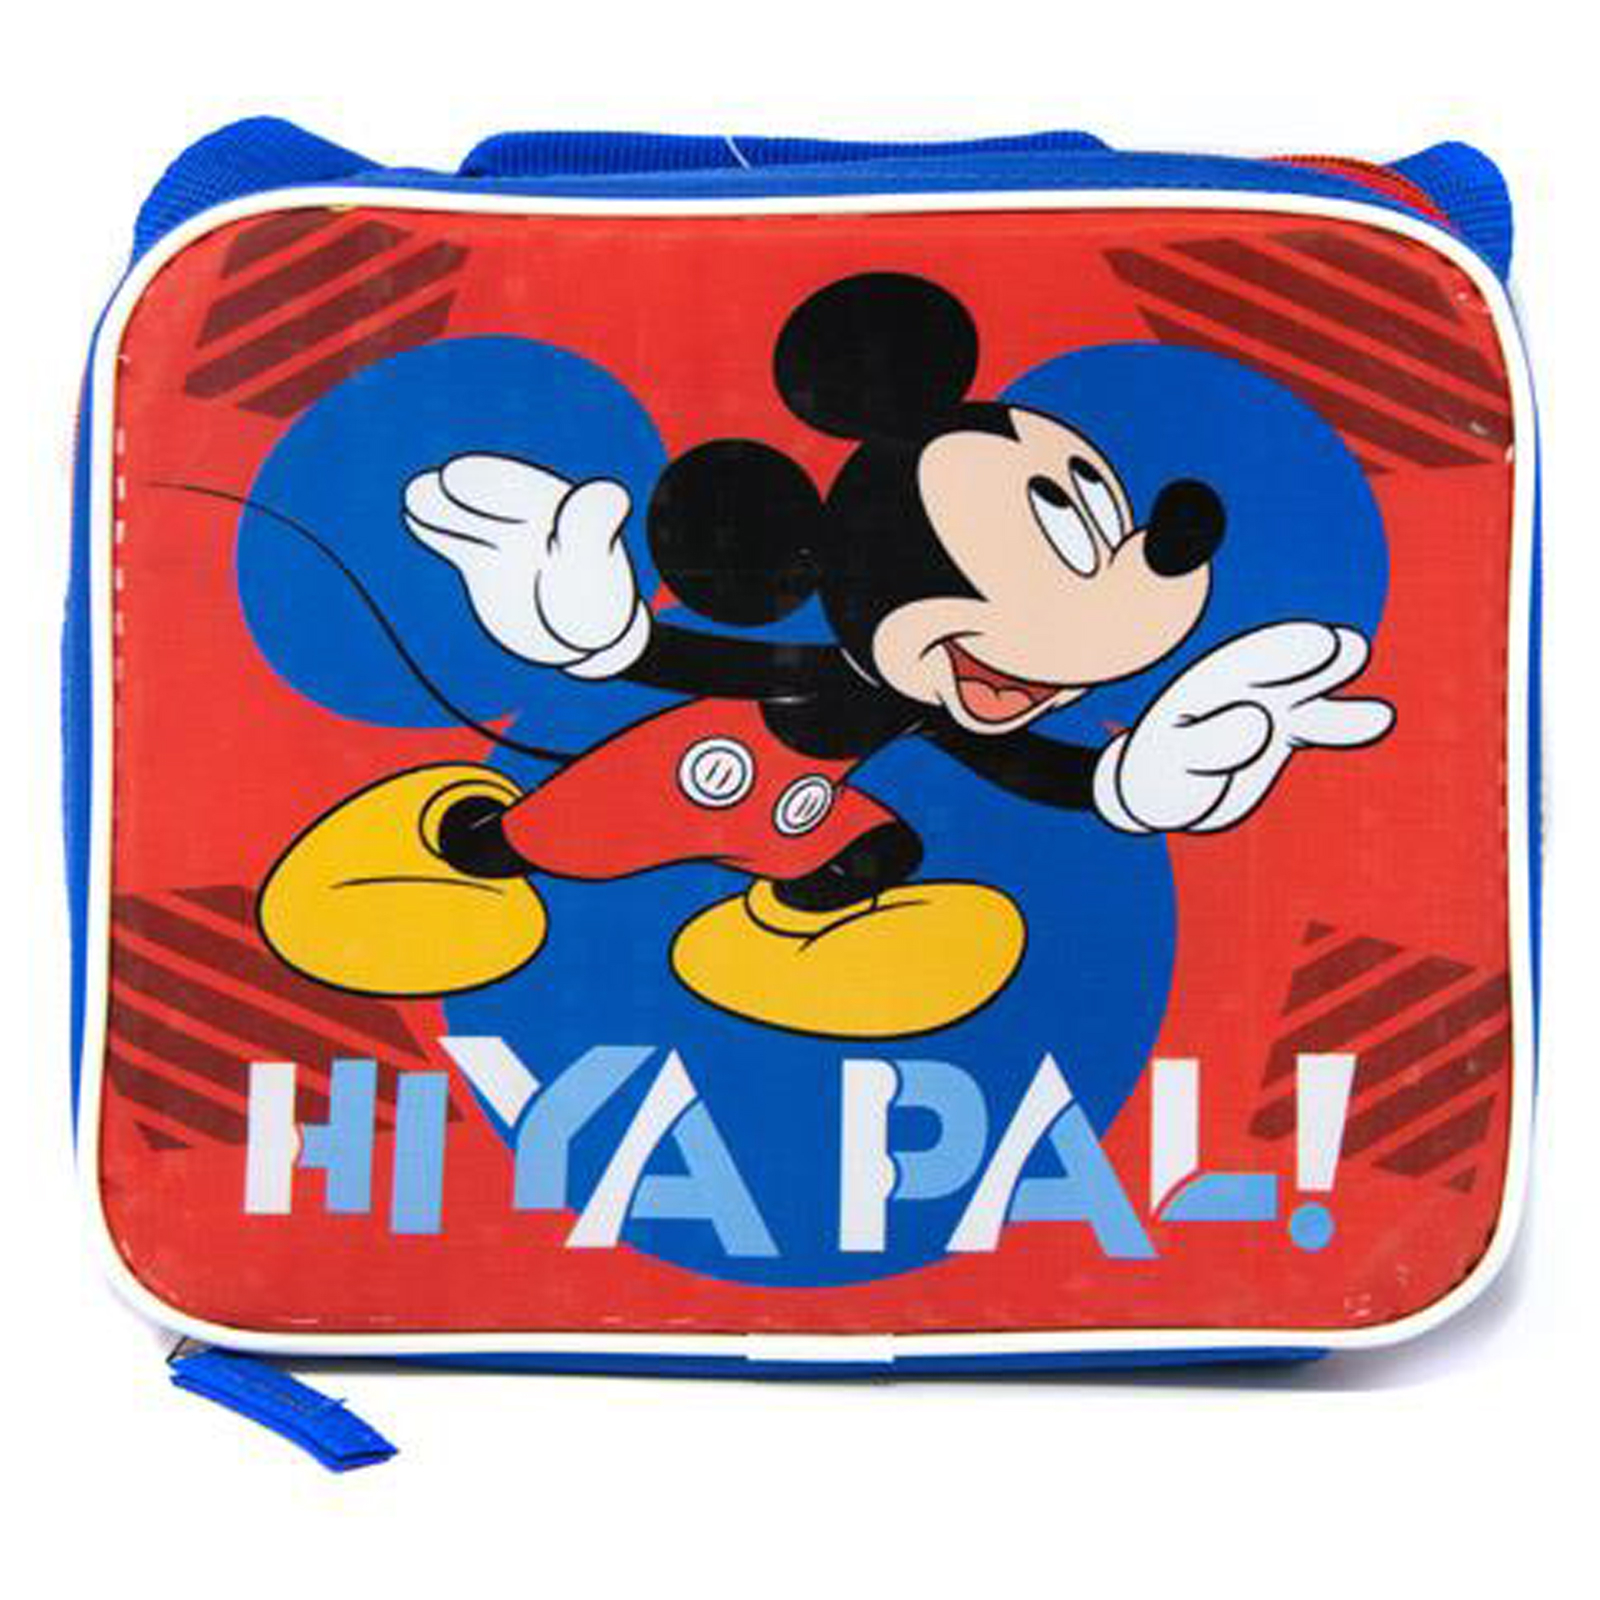 Disney Mickey Mouse Hiya Pal Insulated Lunch Bag Shoulder Strap School Tote